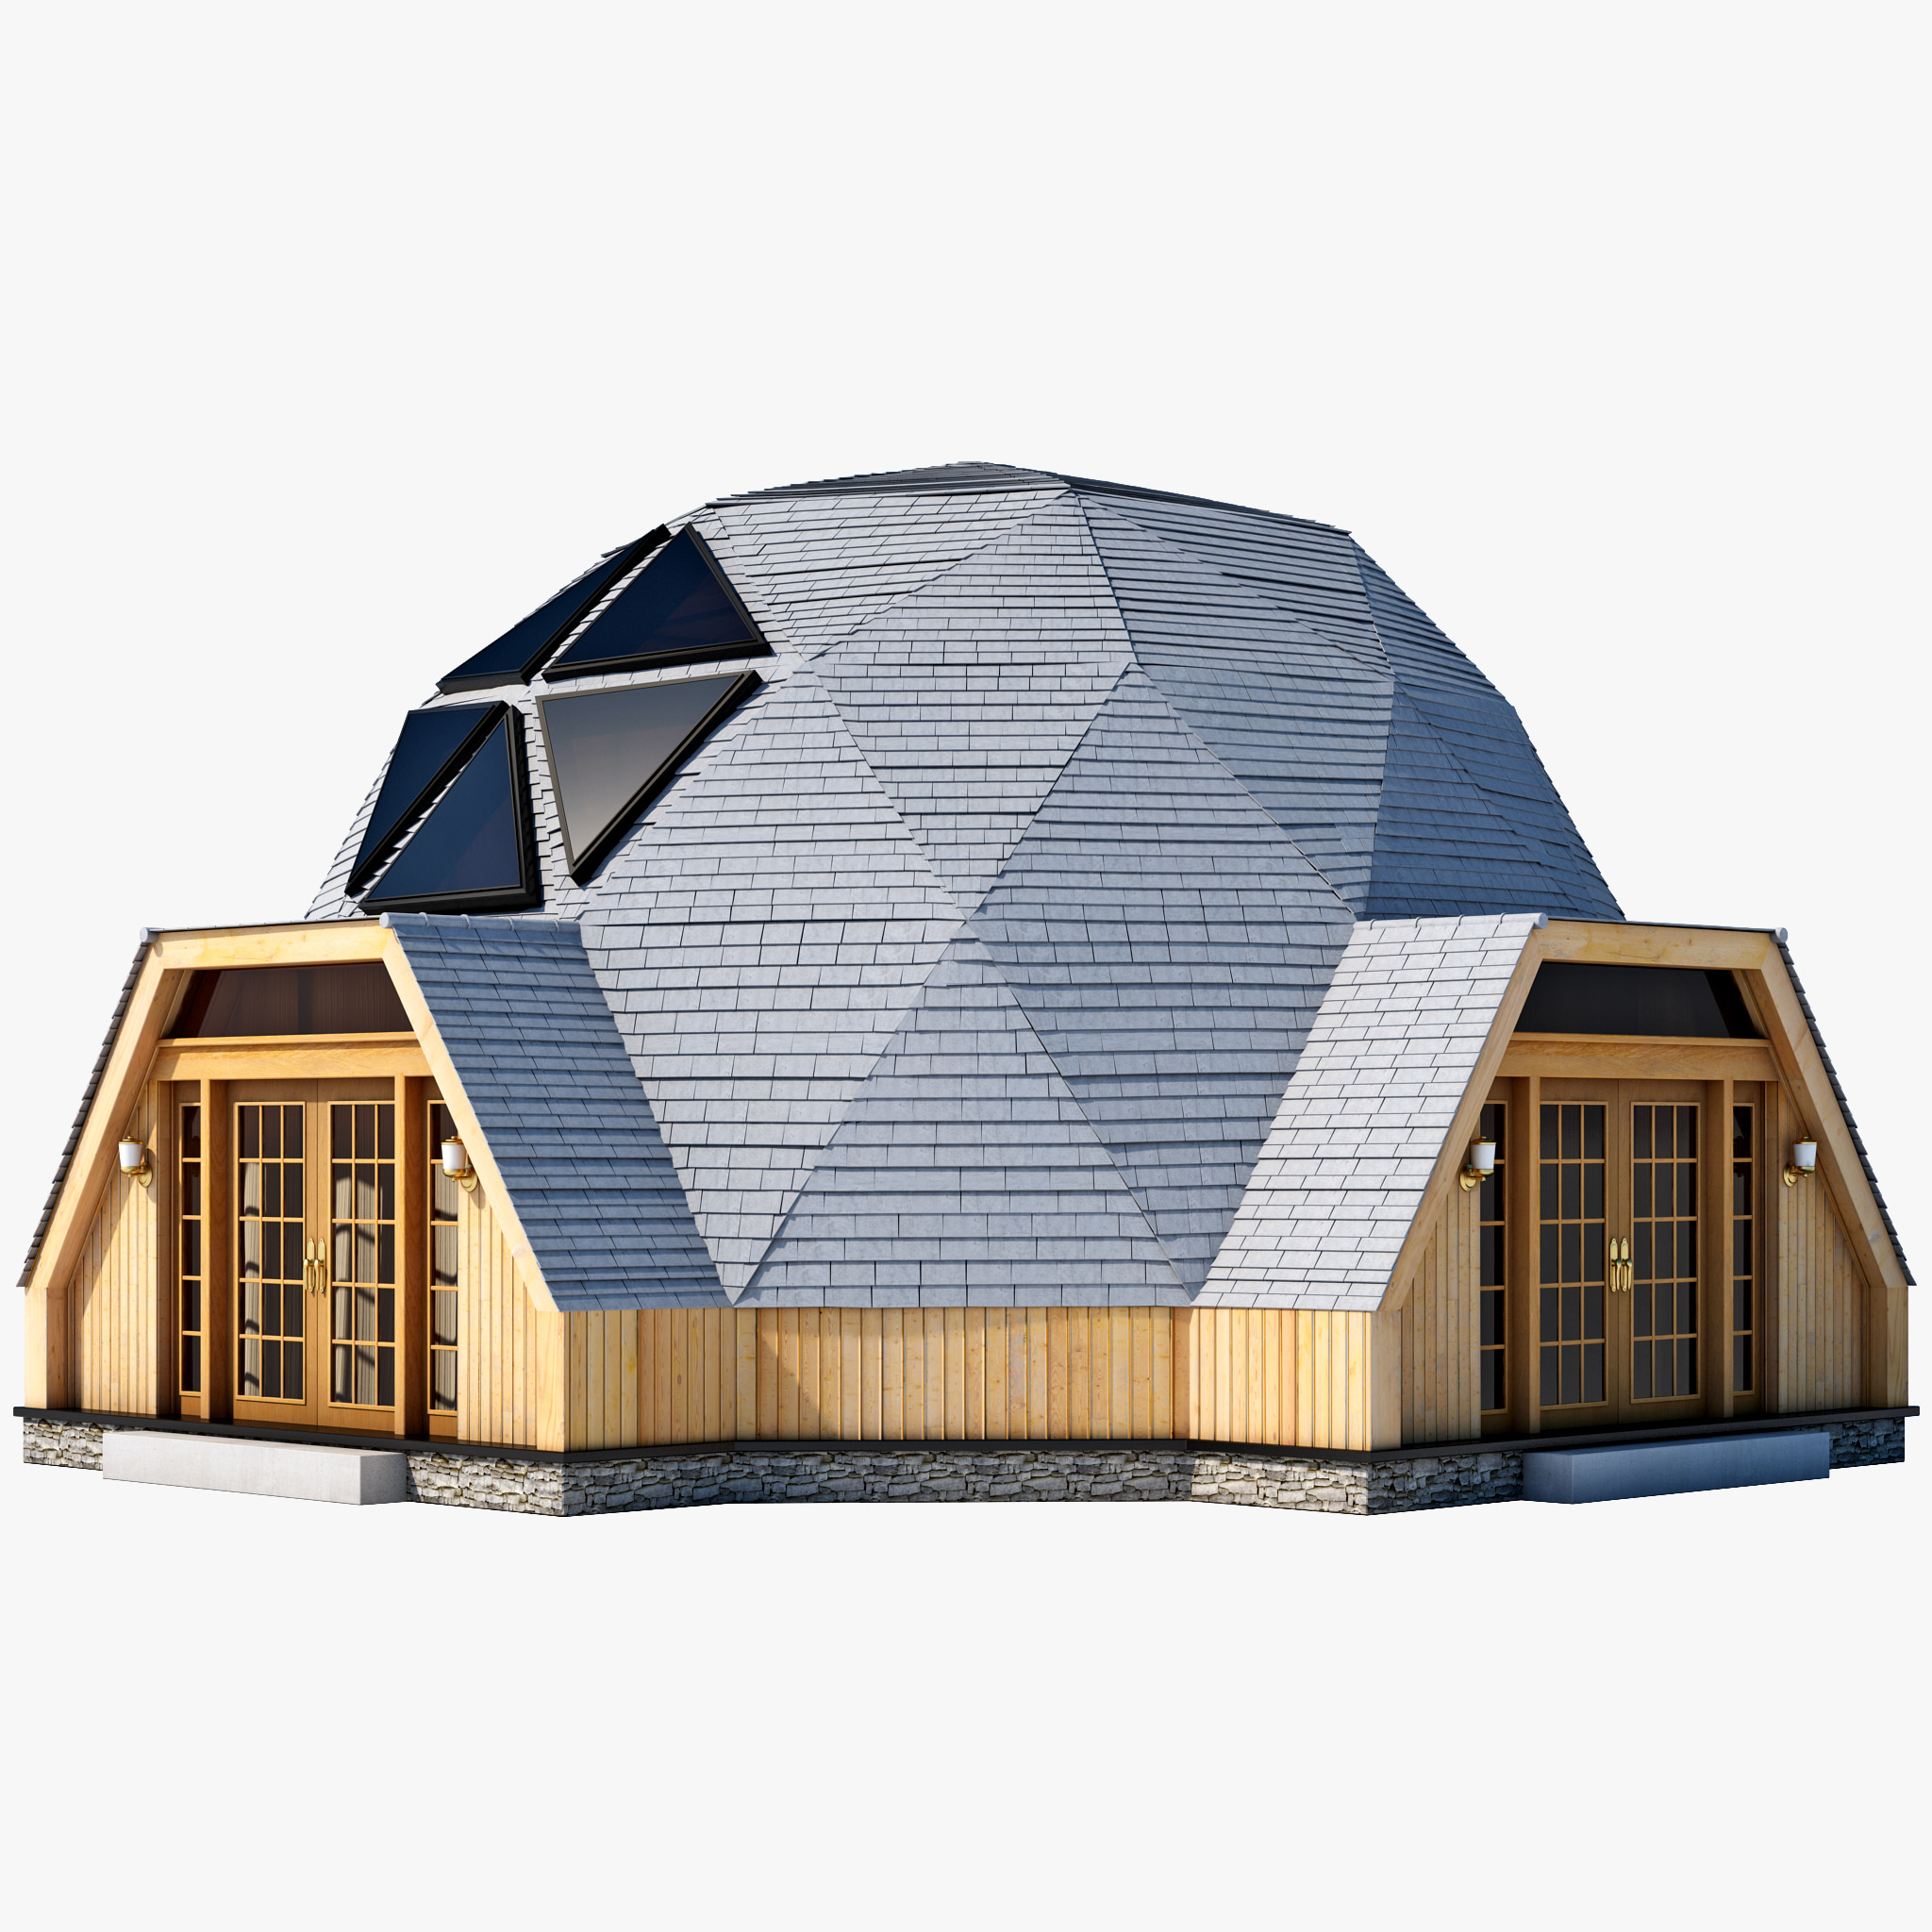 Rotunda Cafe together with Weta Bag End Floor Plan also Temple University Hospital Floor Plan as well R E S E A R C H Re Search Research in addition . on images of dome home floor plans